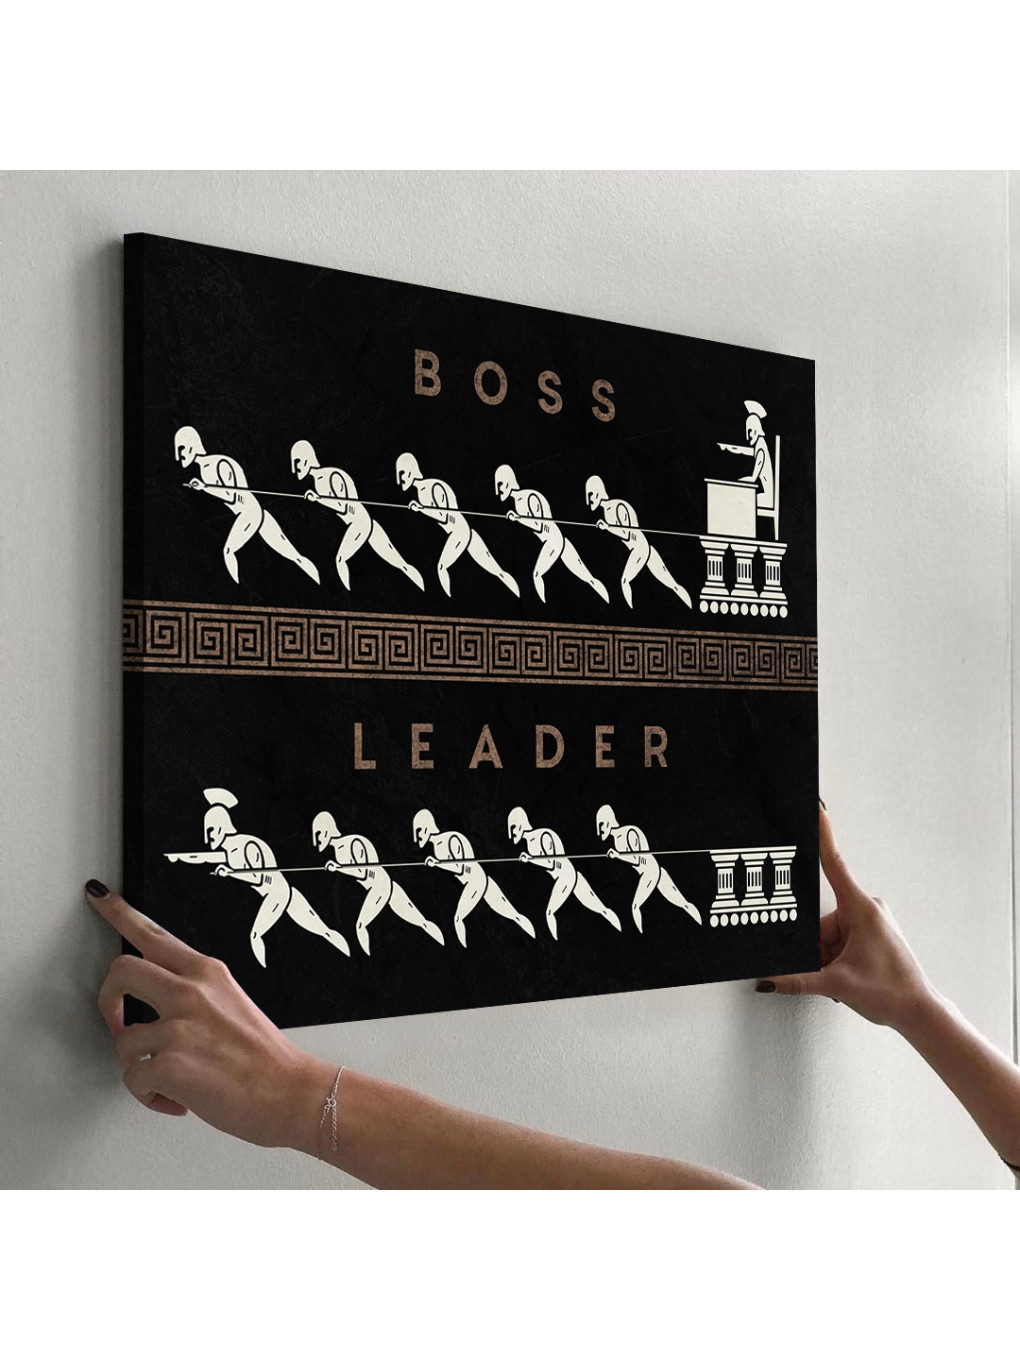 Boss vs Leader_BVL089_6